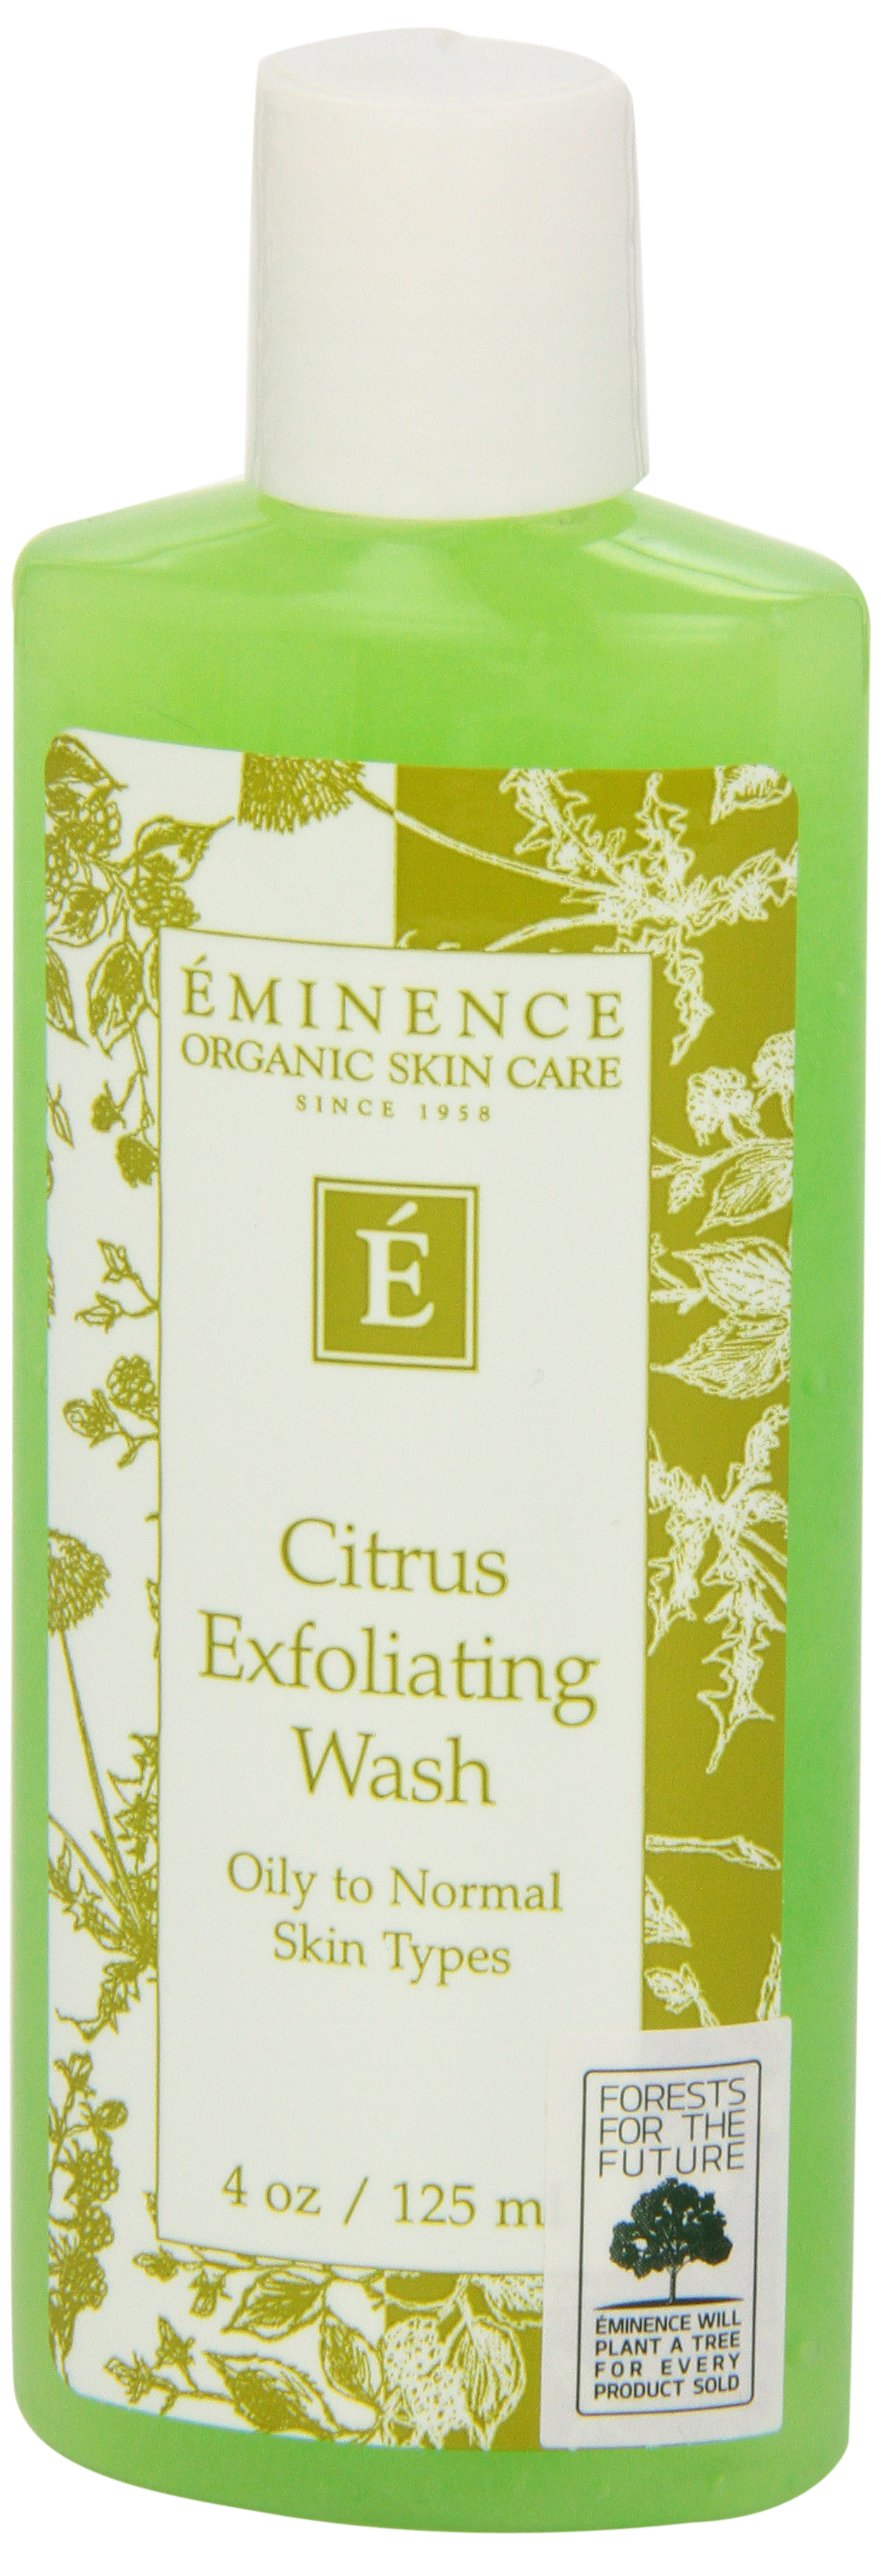 Eminence Citrus Exfoliating Wash, 4.2 Ounce